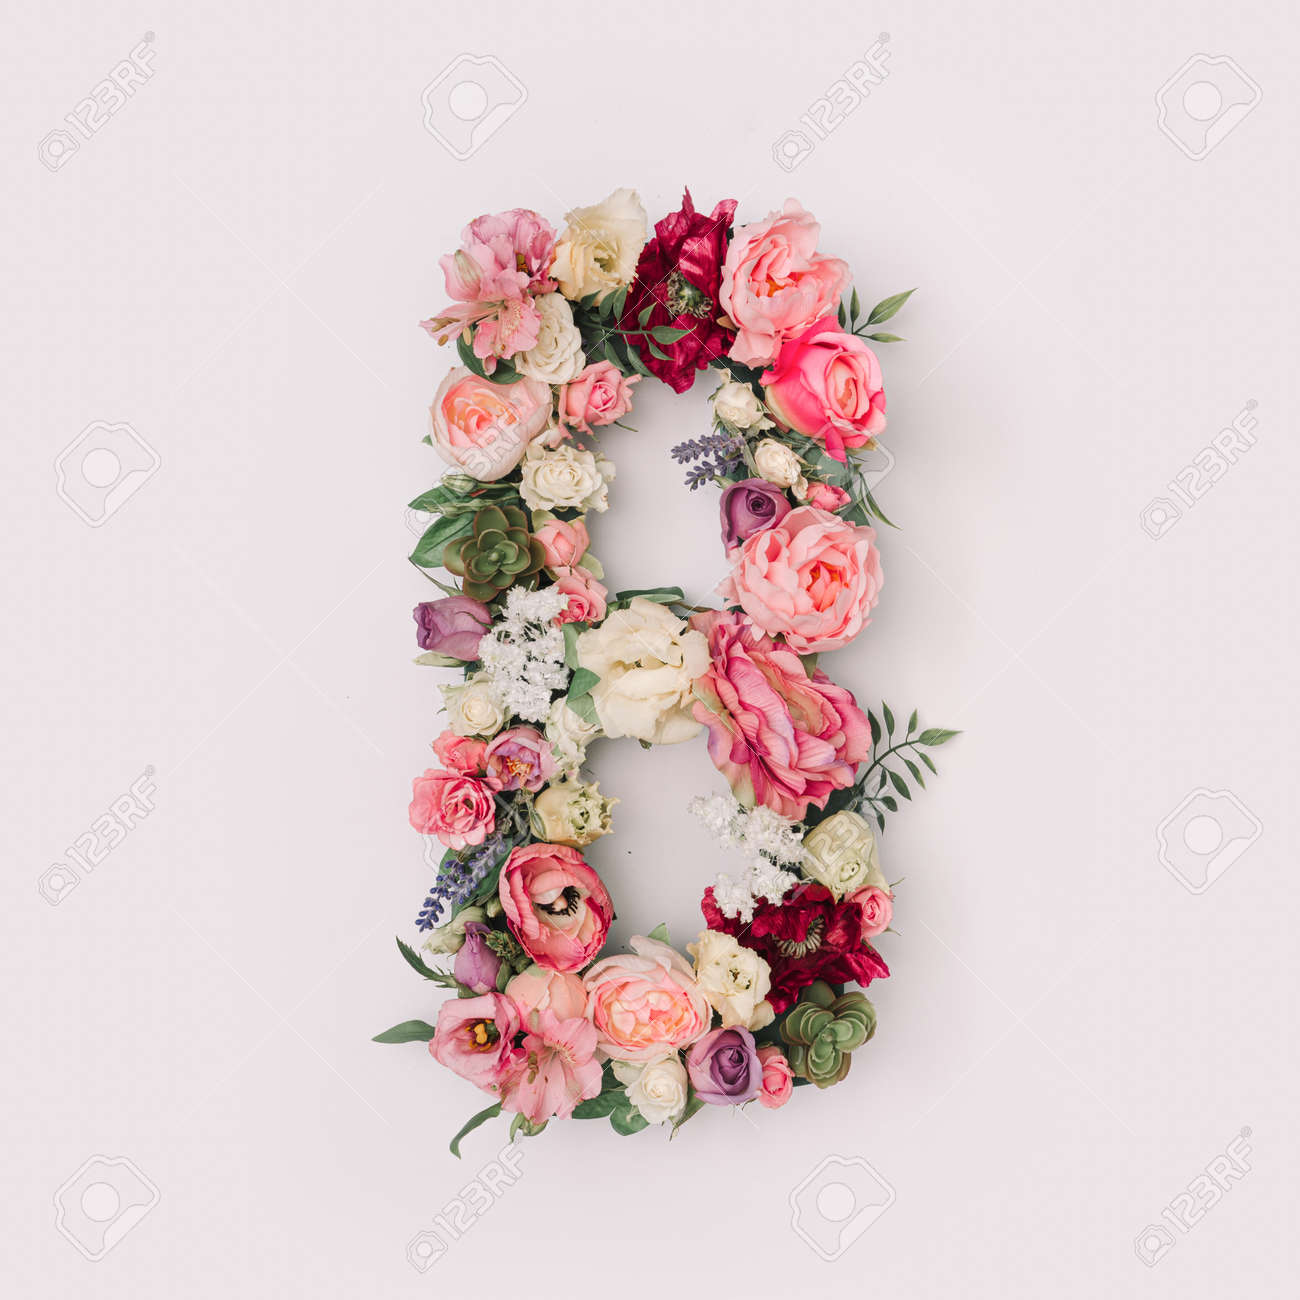 Letter B made of real natural flowers and leaves. Flower font concept. Unique collection of letters and numbers. Spring, summer and valentines creative idea. - 163345583